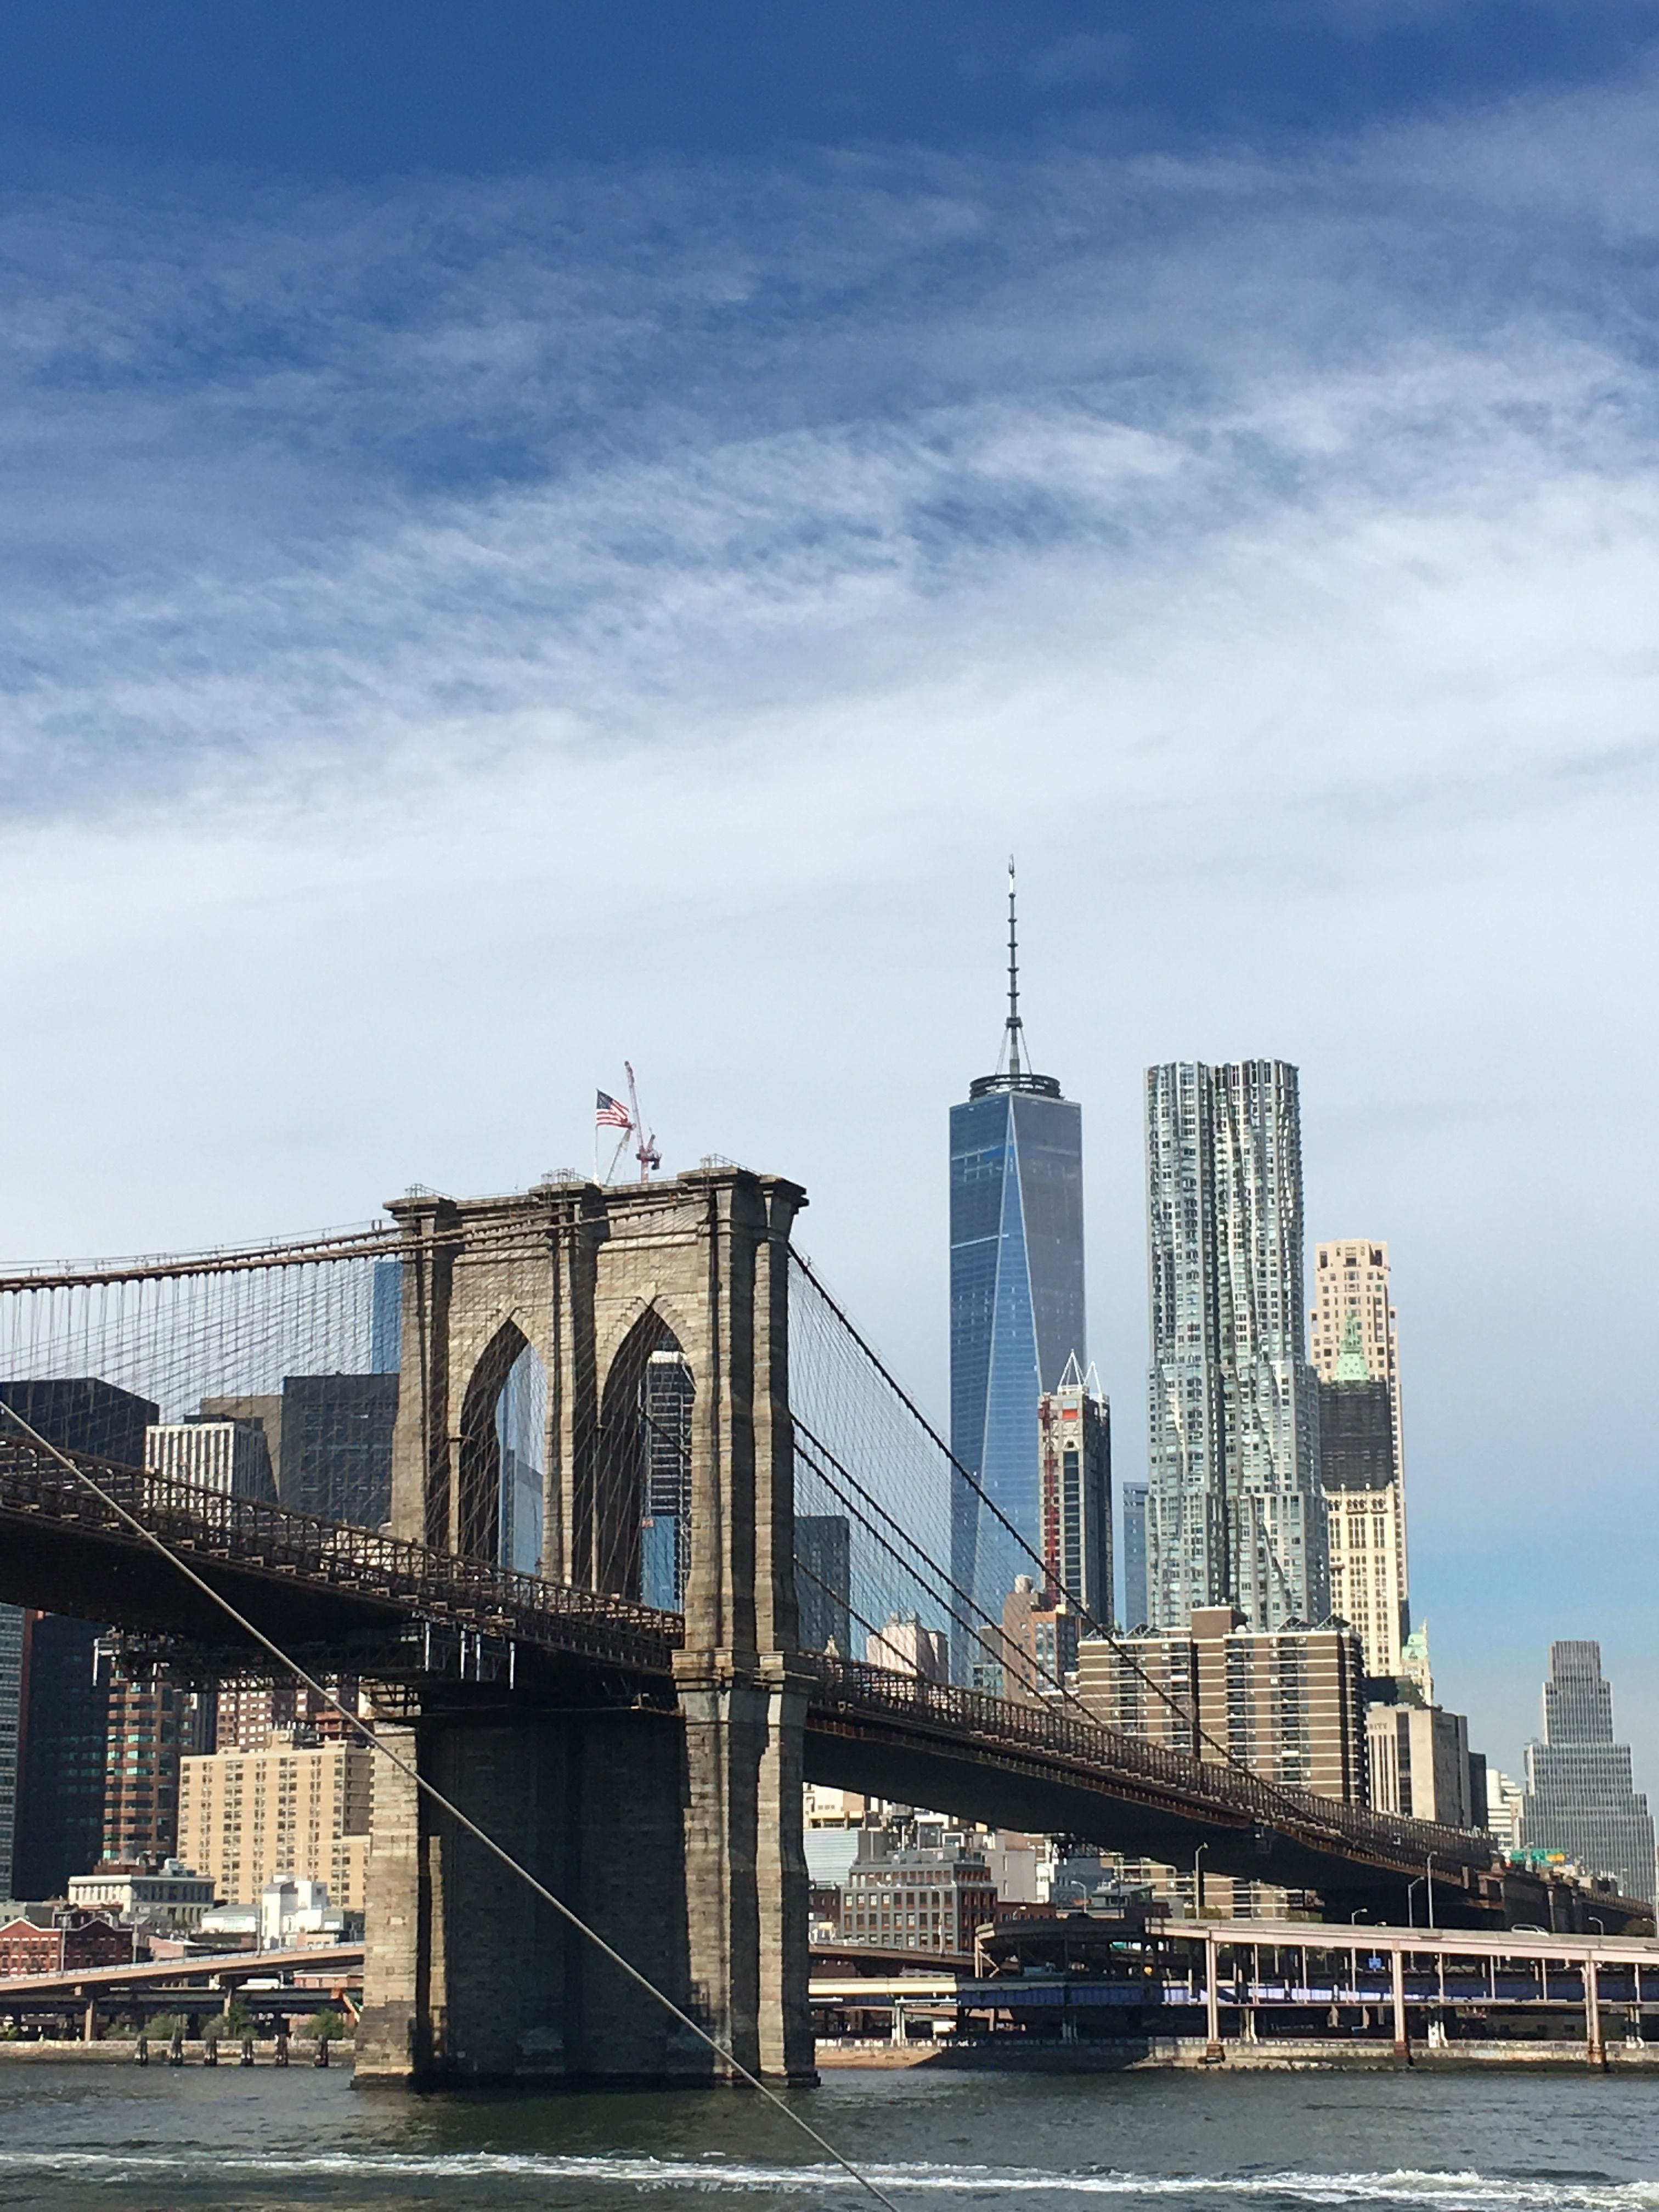 New york: the brooklyn bridge and the one world trade center